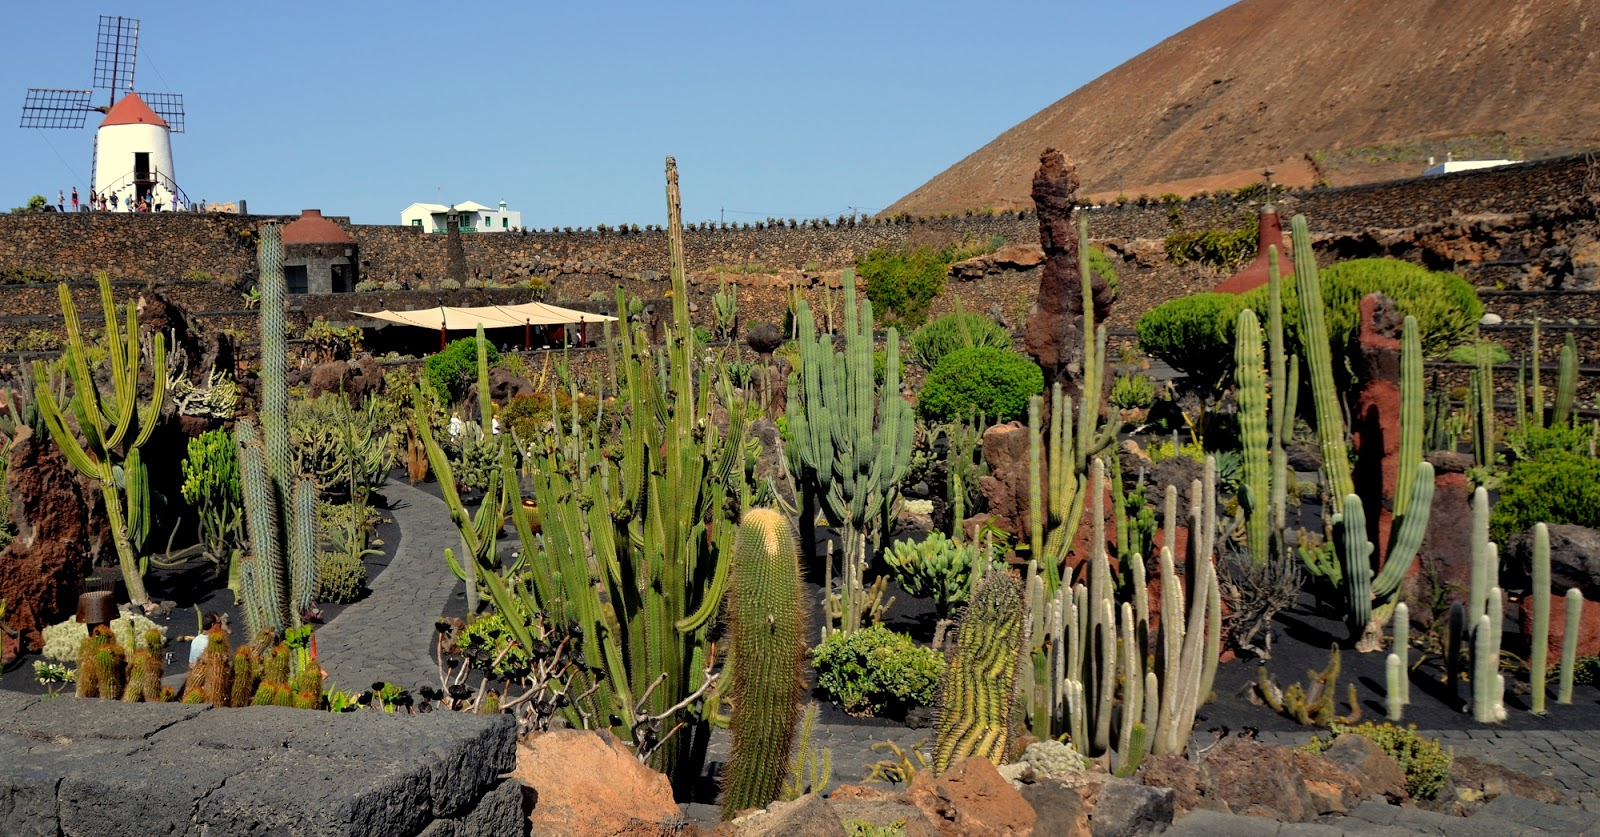 camino de letras con syra jard n de cactus en lanzarote. Black Bedroom Furniture Sets. Home Design Ideas